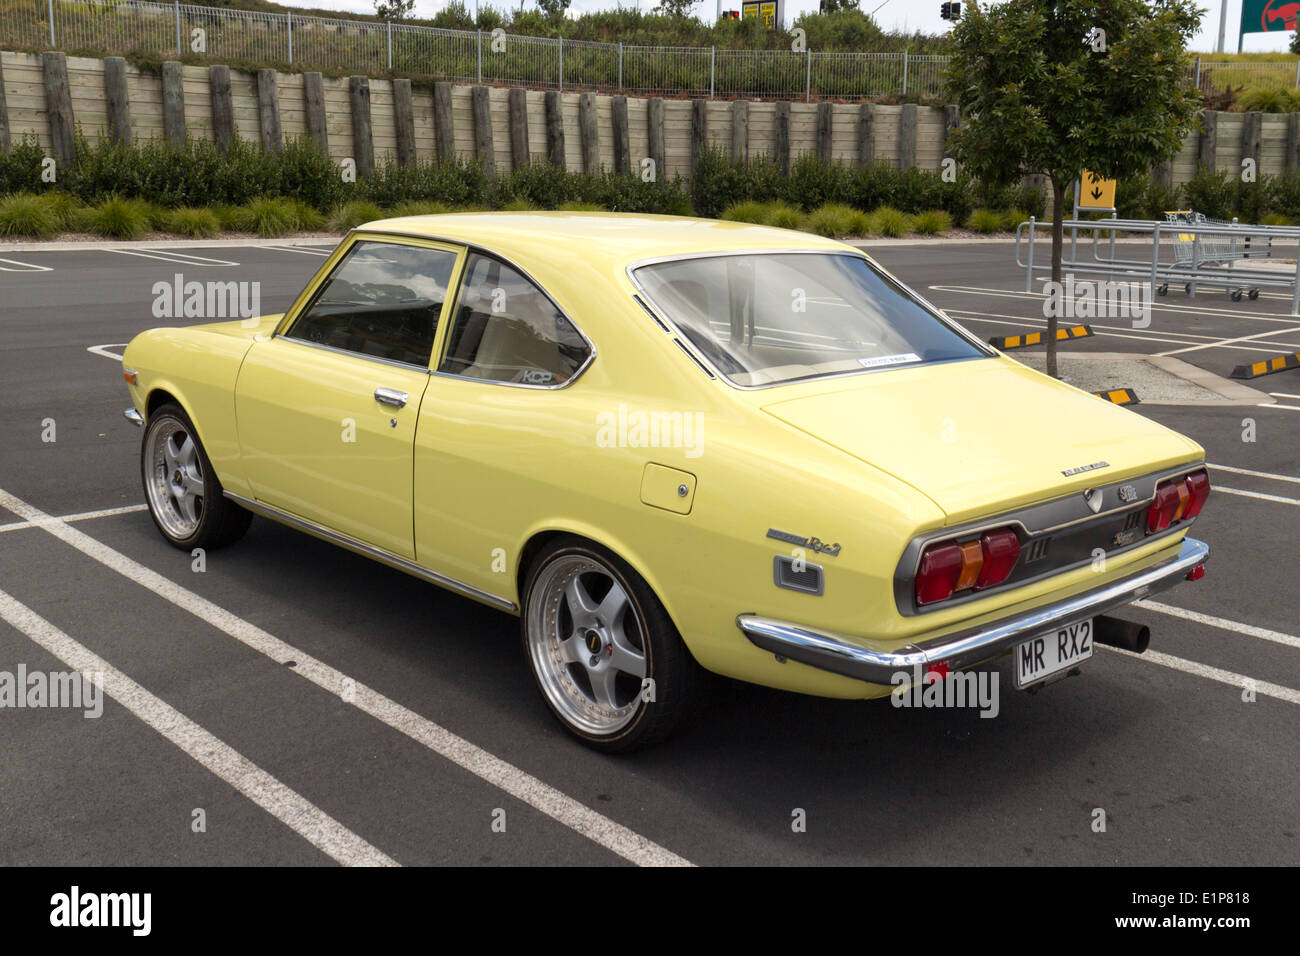 New Zealand 2013 2014 Mazda Rx2 Stock Photo 69945380 Alamy